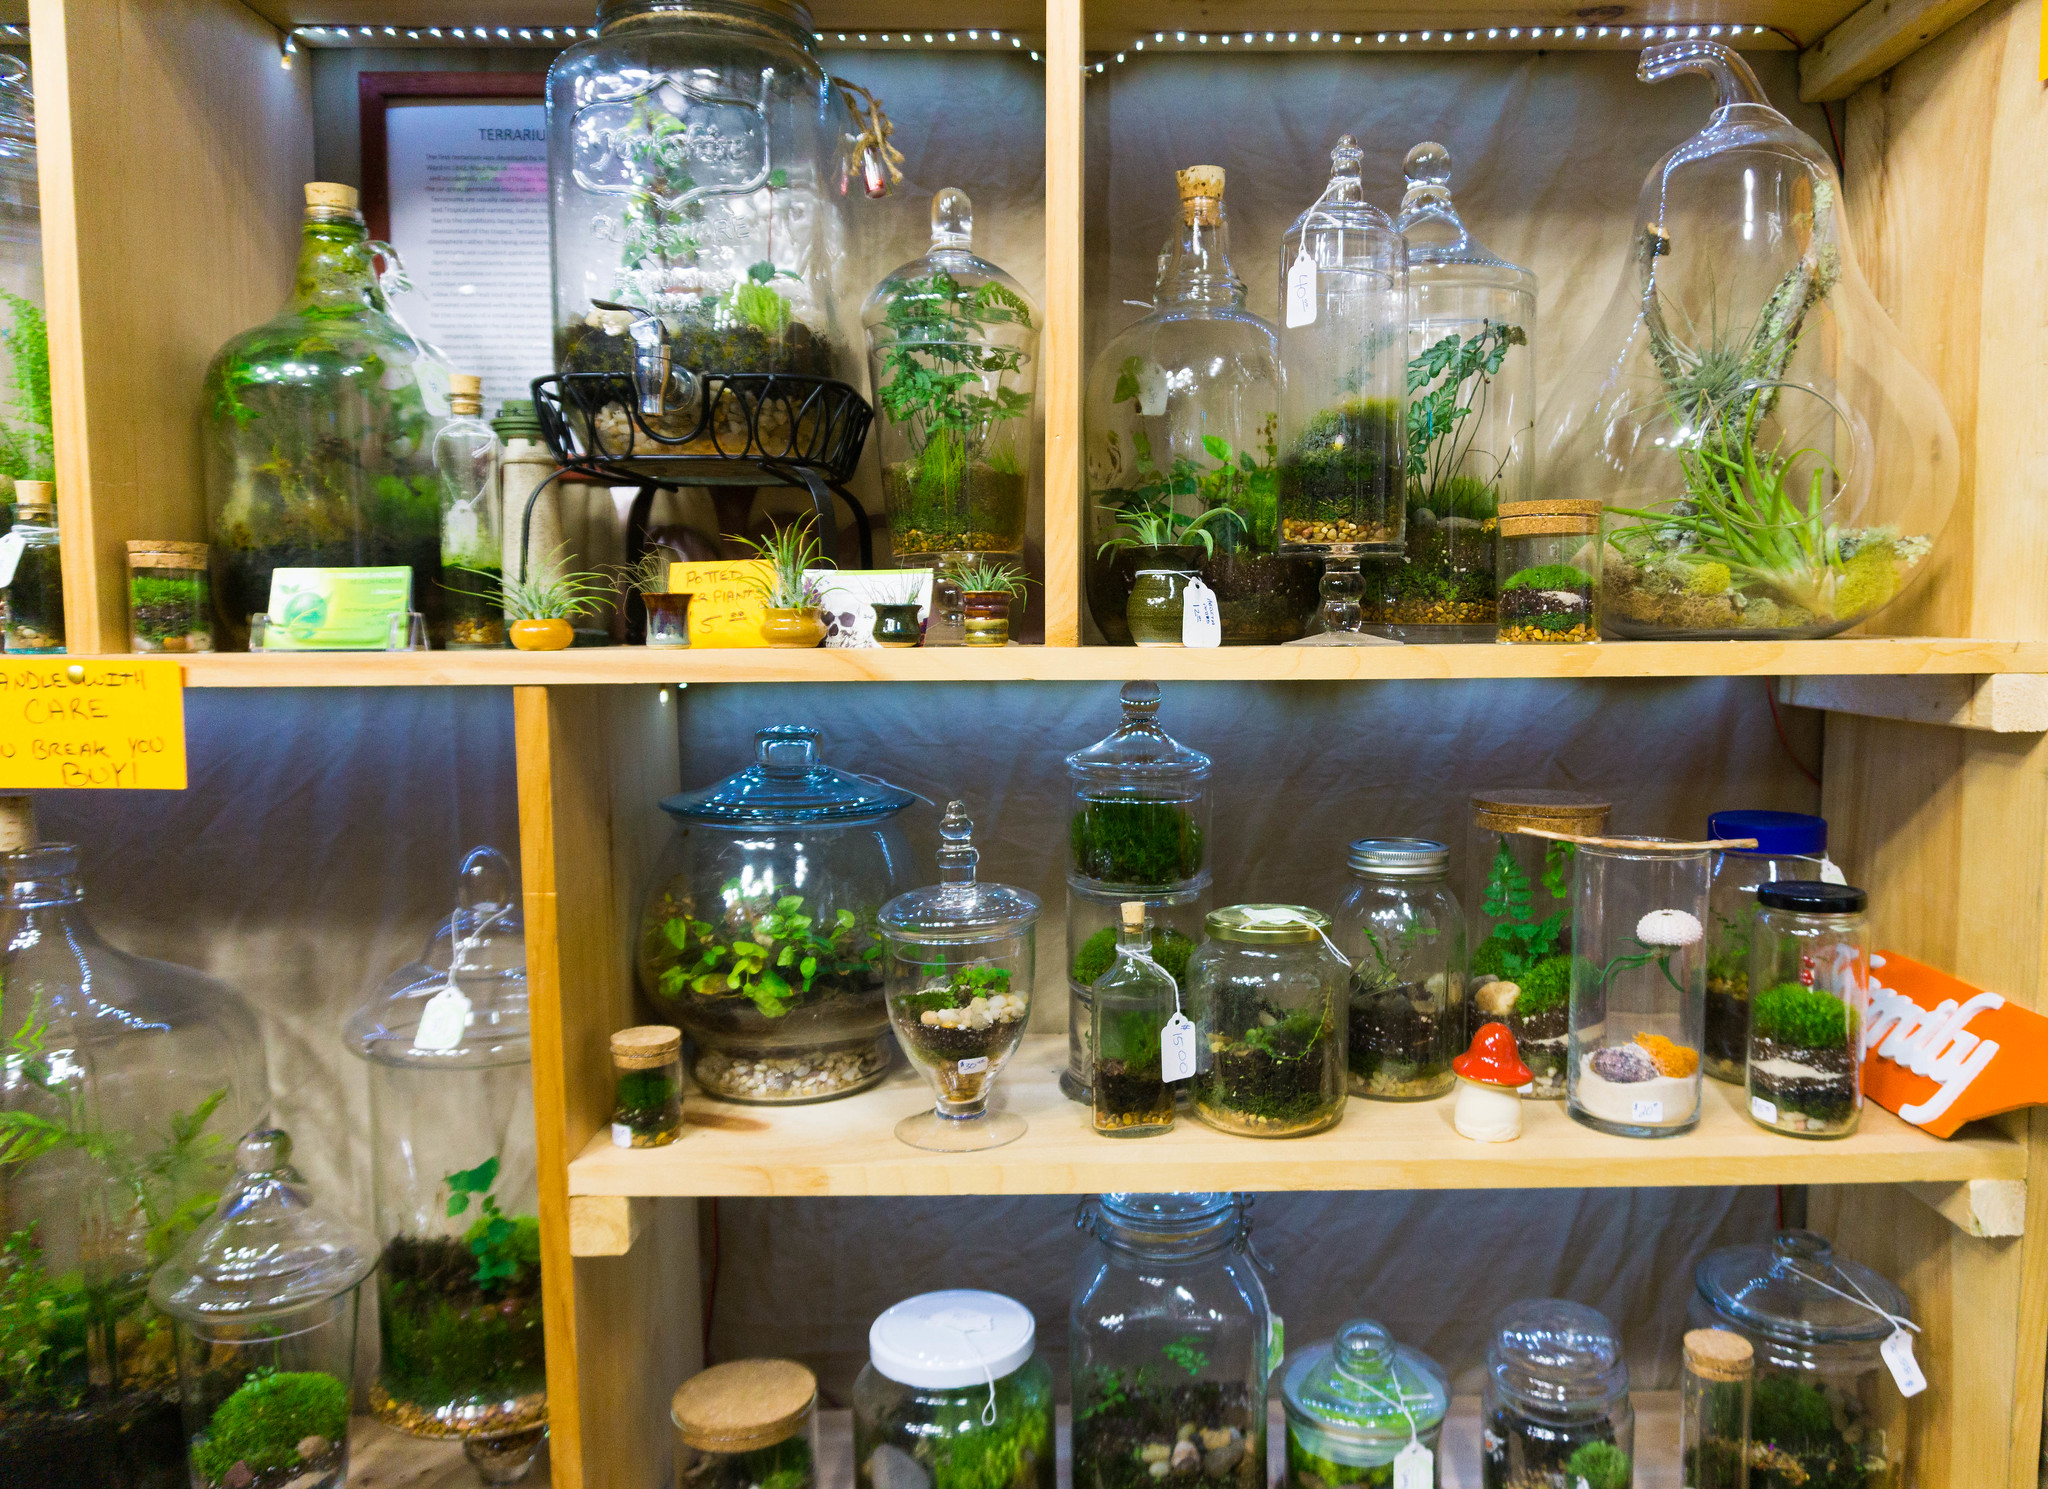 JD's Terrariums and More Located at Flea Traders Paradise in Sevierville, Tenn.